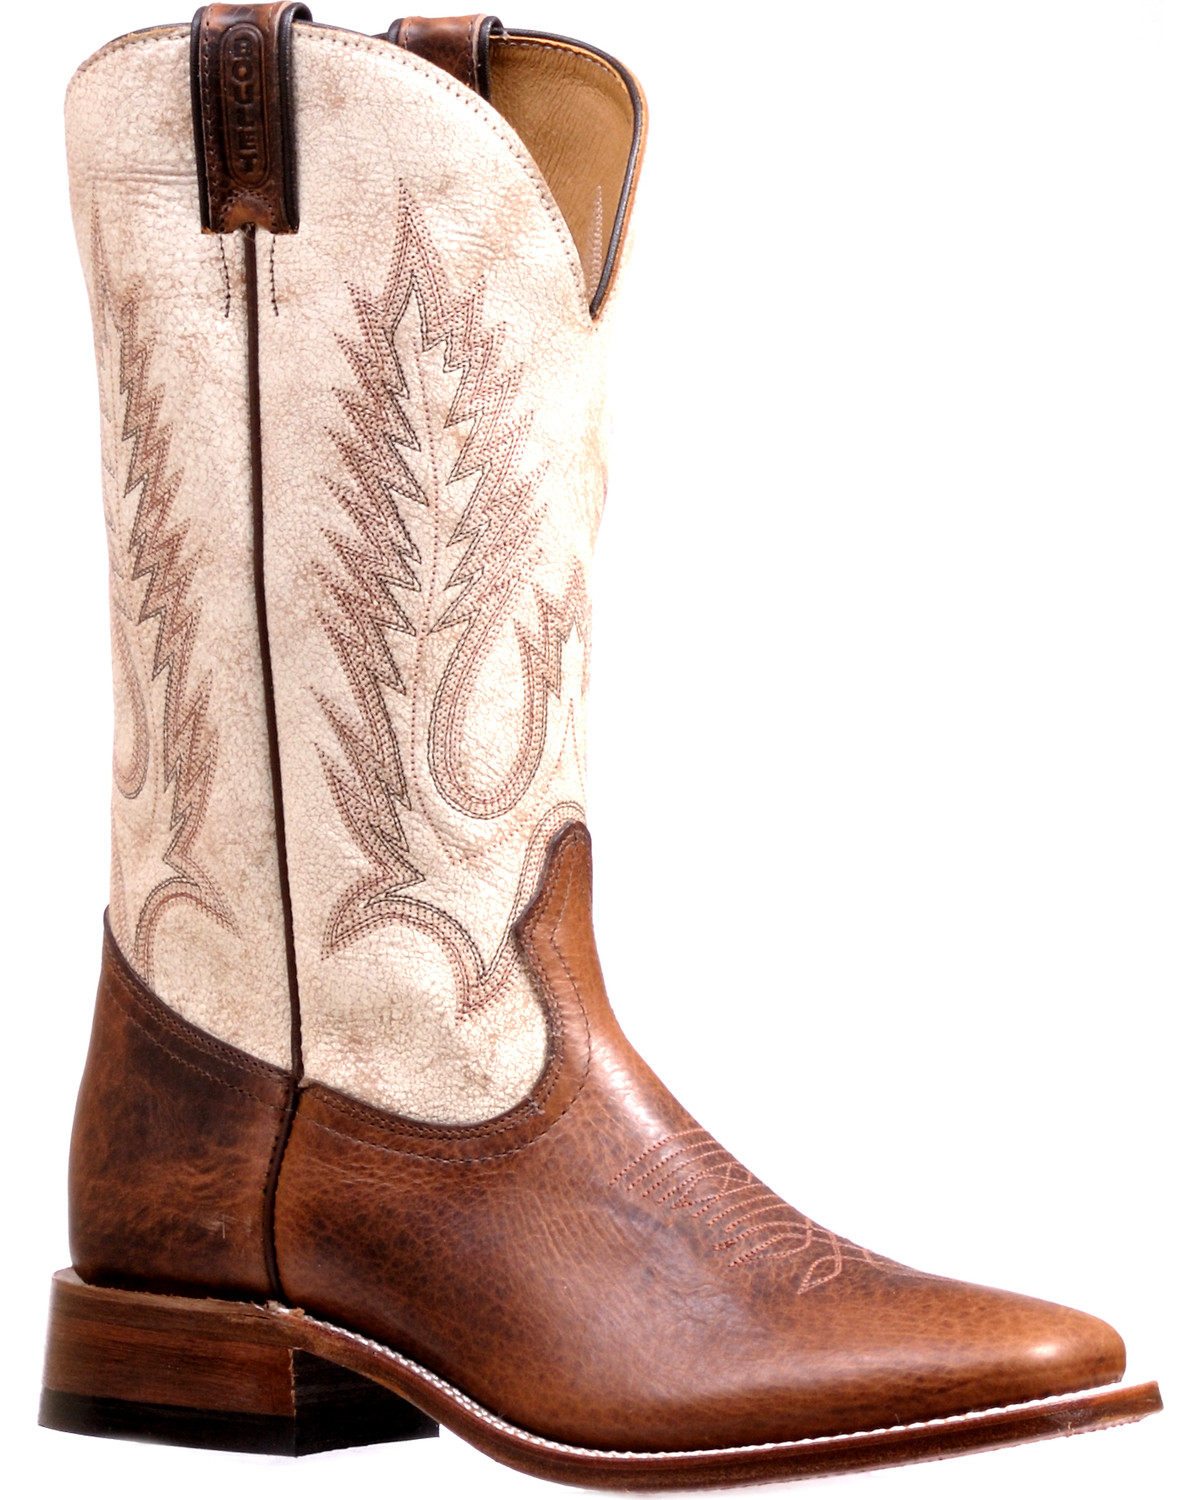 692a2213425 Boulet Men's Bone Stockman Cowboy Boots - Square Toe